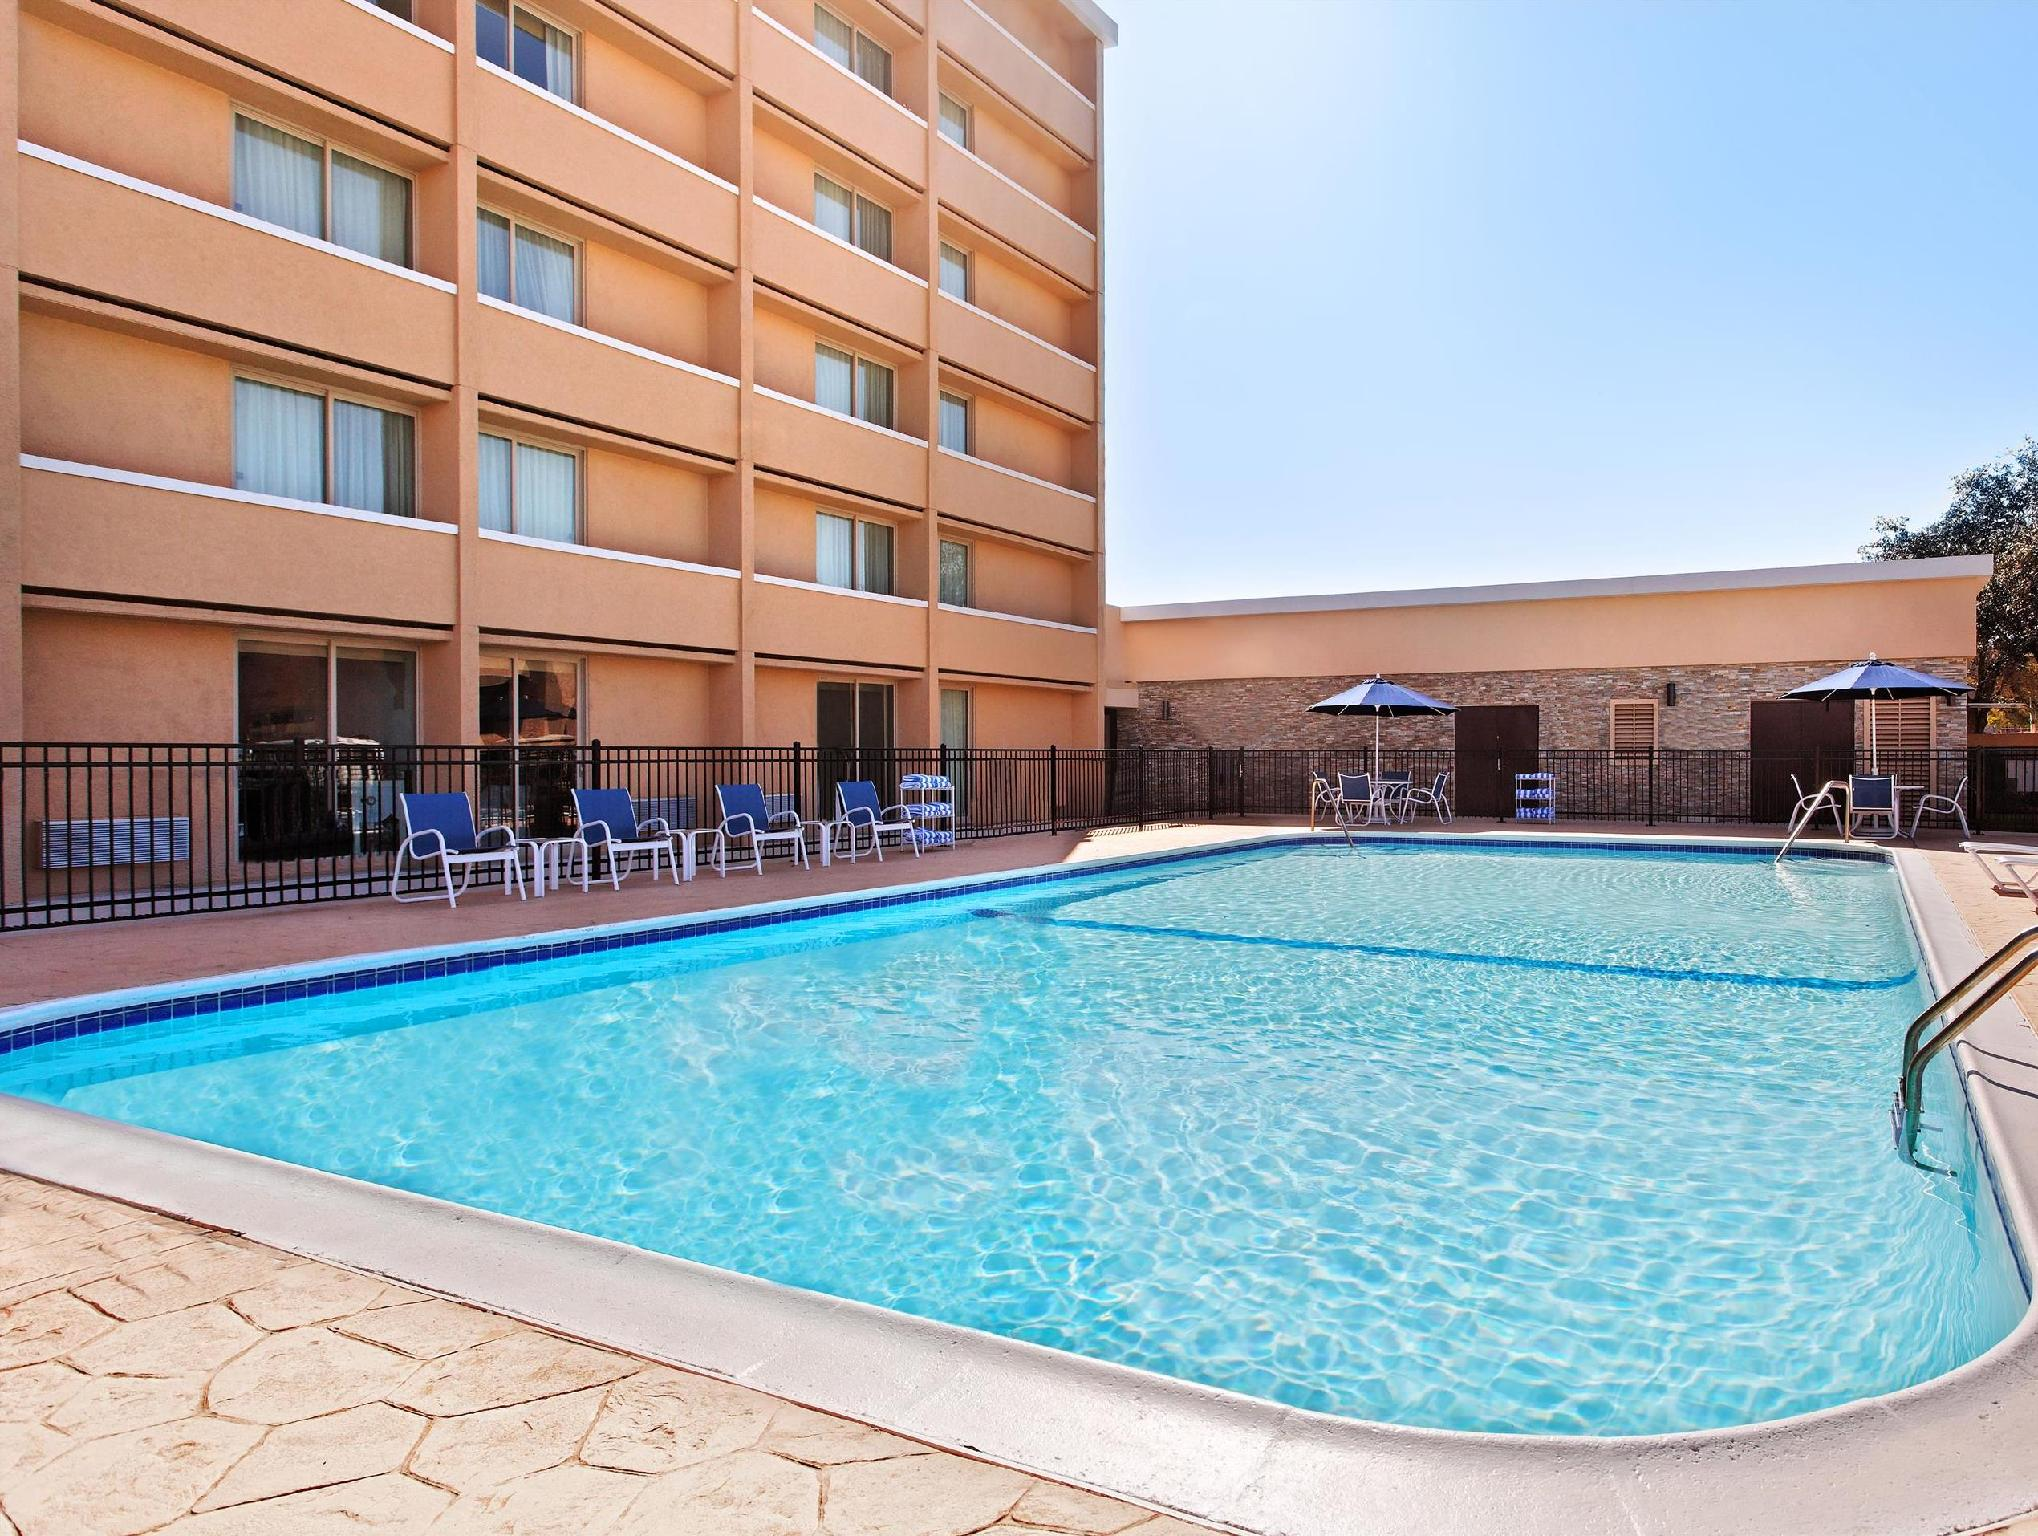 Four Points by Sheraton College Station Photo Swimming Pool